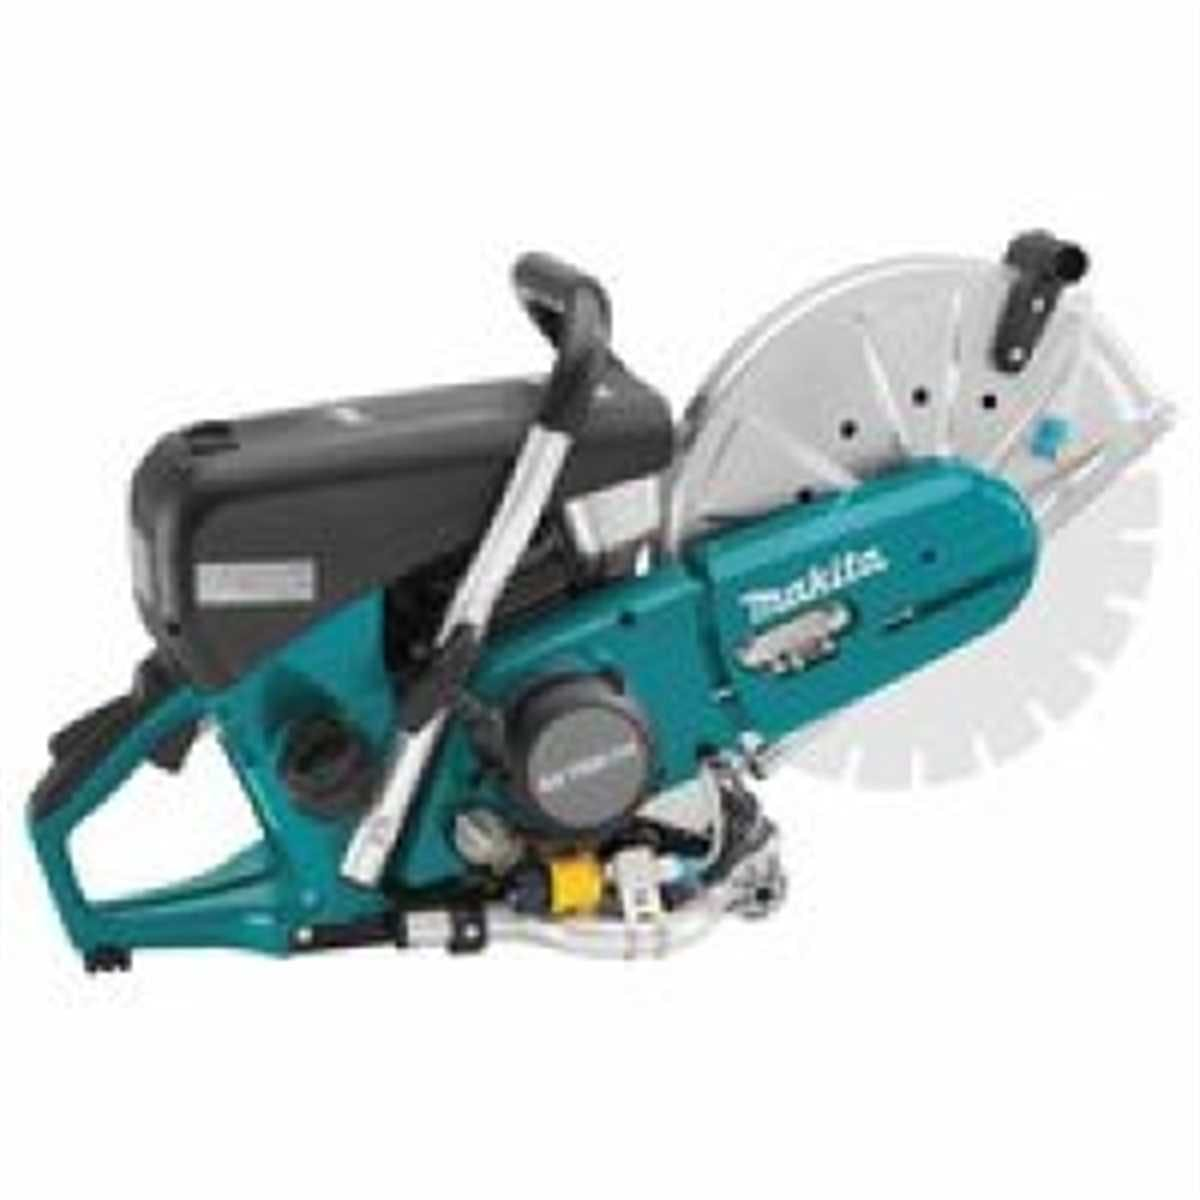 "14"" MM4 4-STROKE POWER CUTTER 458-EK7651H Package design / cutting equpiment sold by Janeice Products Co Inc."